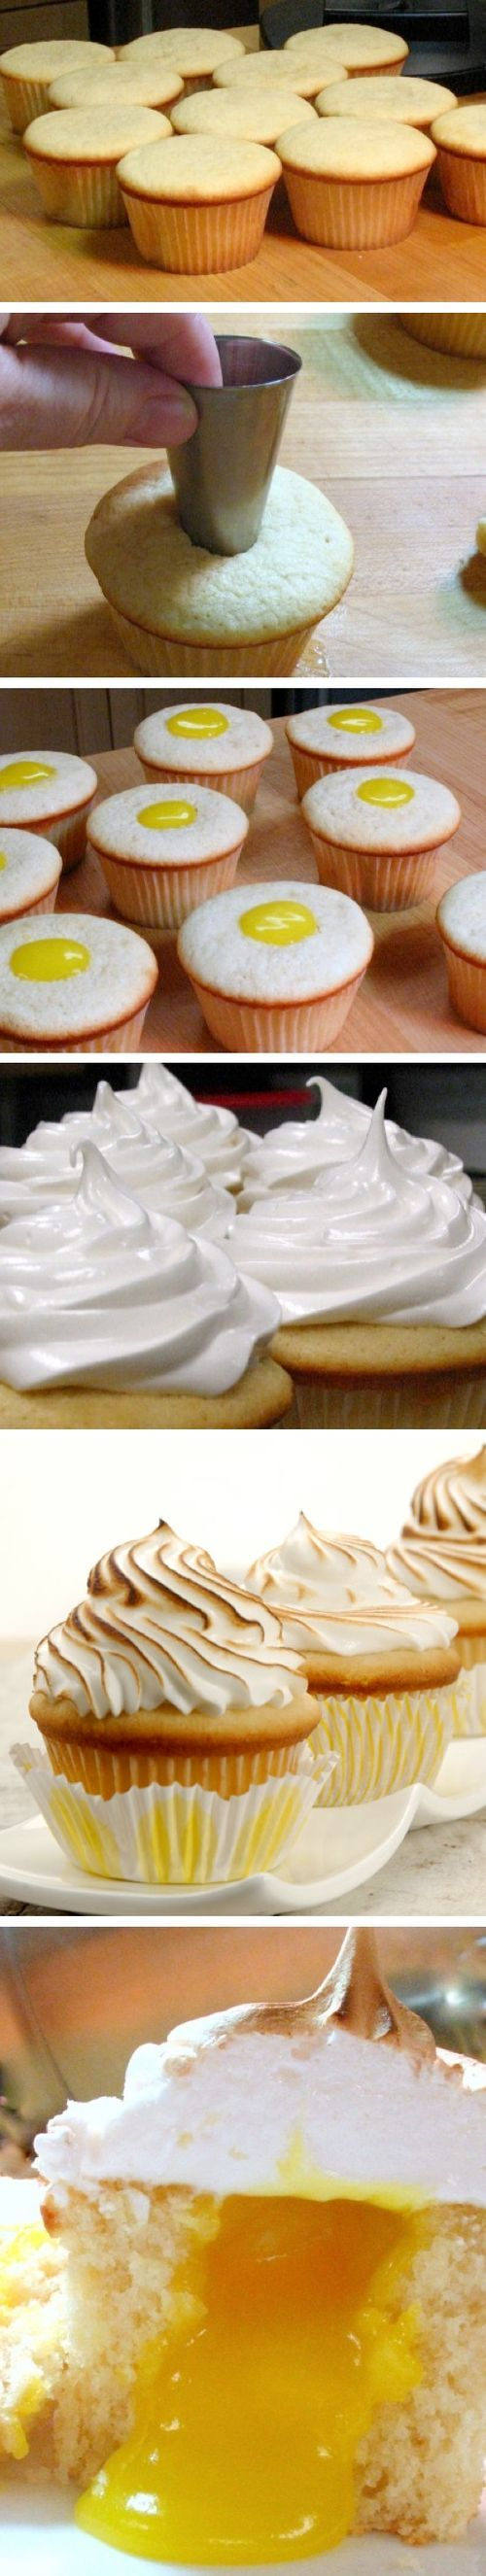 Lemon Meringue Cupcakes Food Pix / Recipe by Picture on imgfave